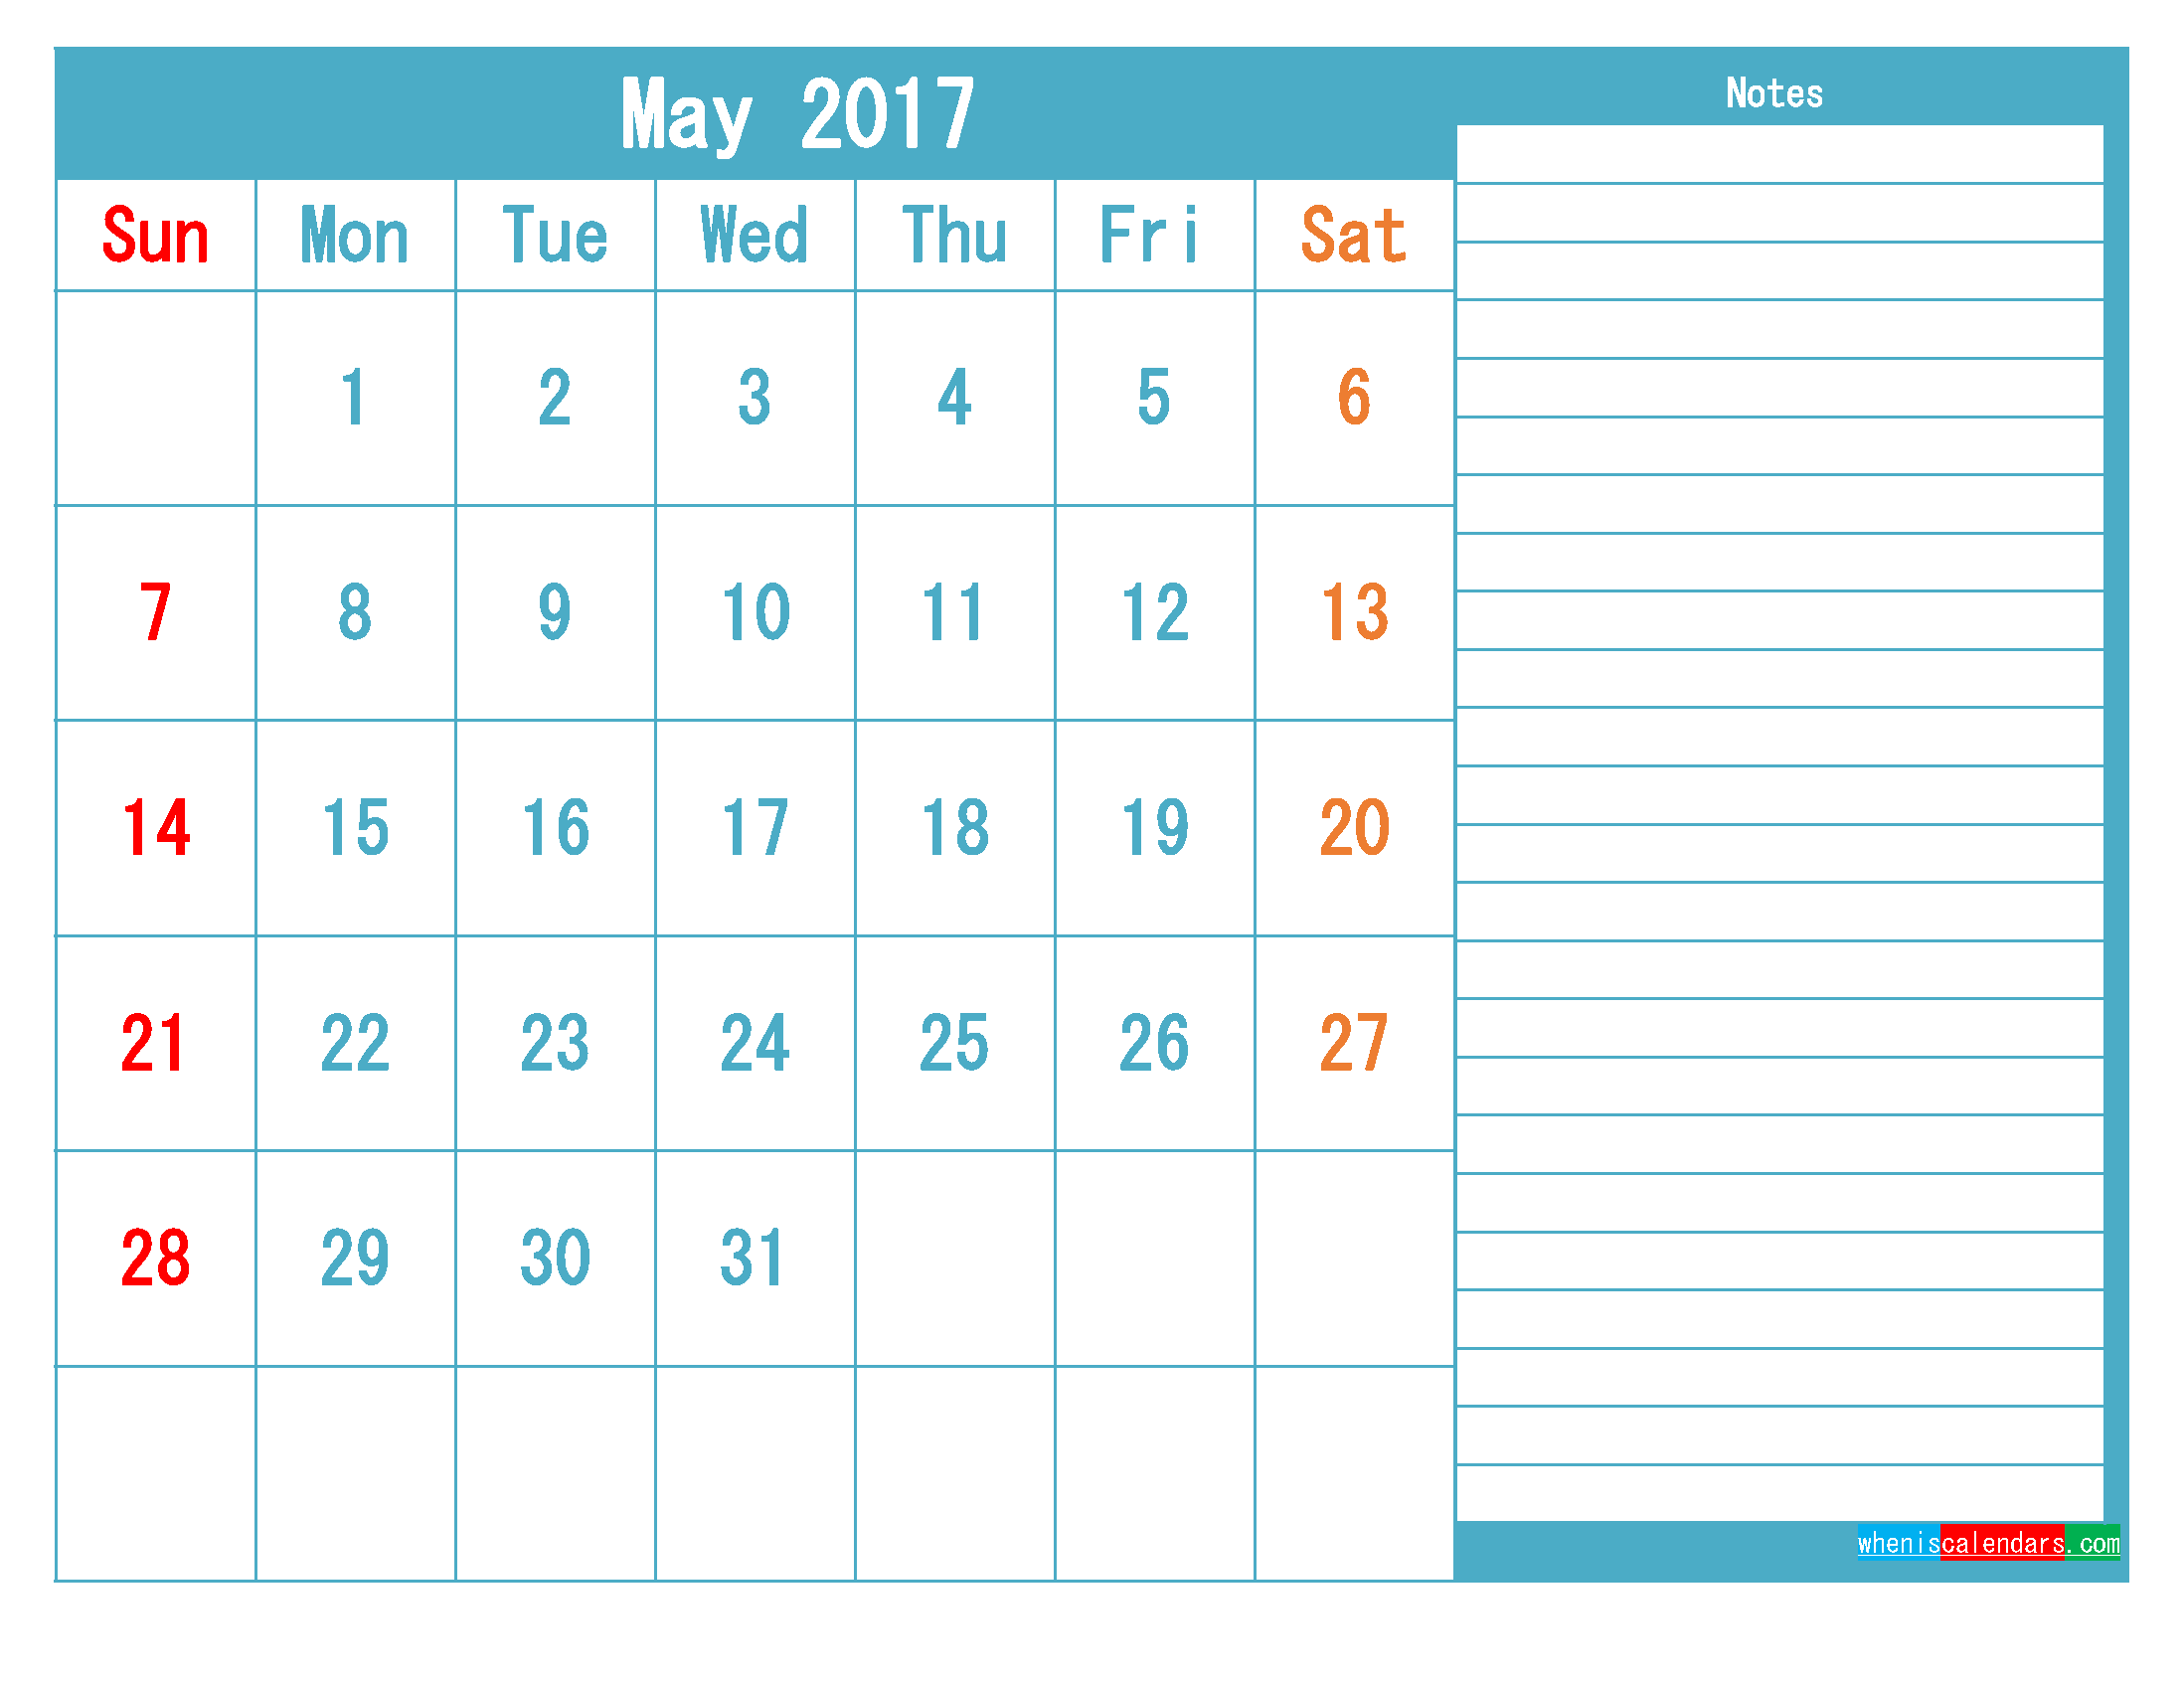 May 2017 Printable Calendar Templates PDF and Image